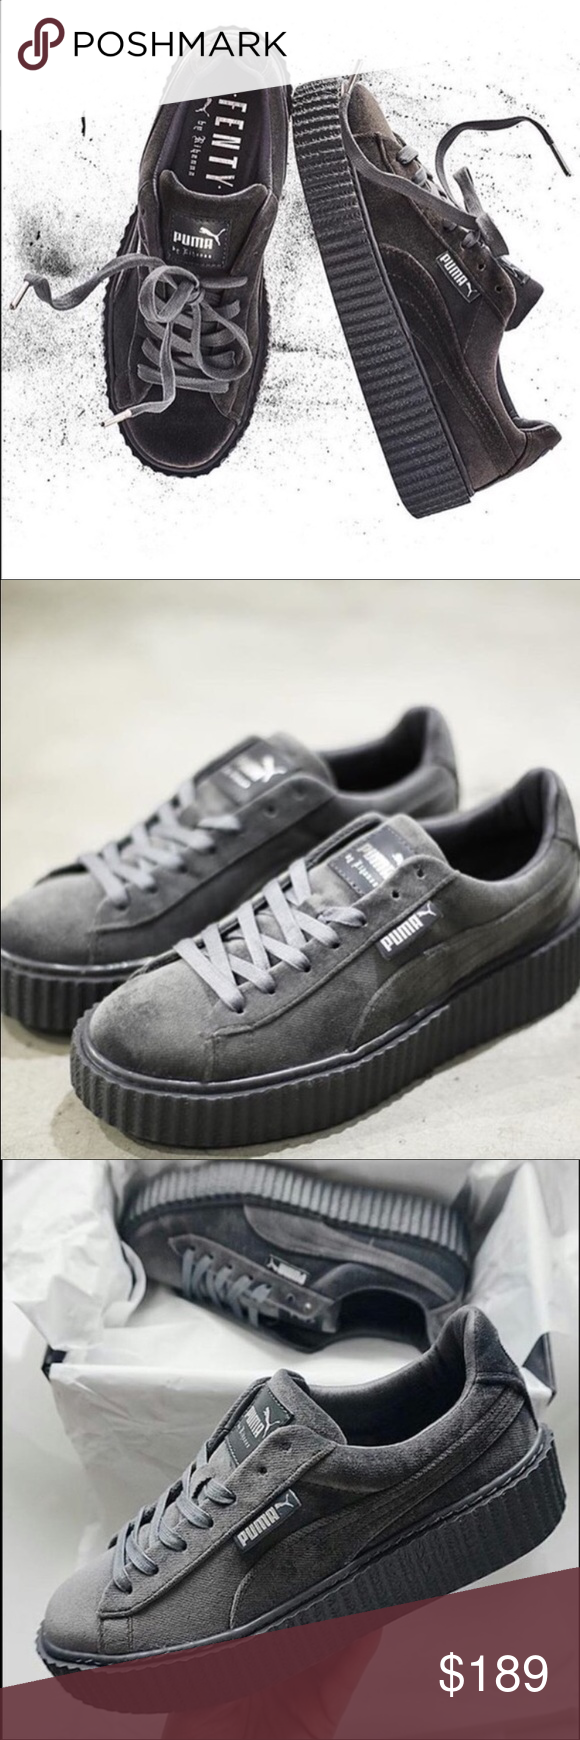 PUMA BY RIHANNA WOMEN S VELVET CREEPER PUMA by Rihanna Collection and FENTY  Selected Style  Glacier Gray Glacier Gray Glacier Gray Velvet upper Lace  closure ... 541d9bf47f